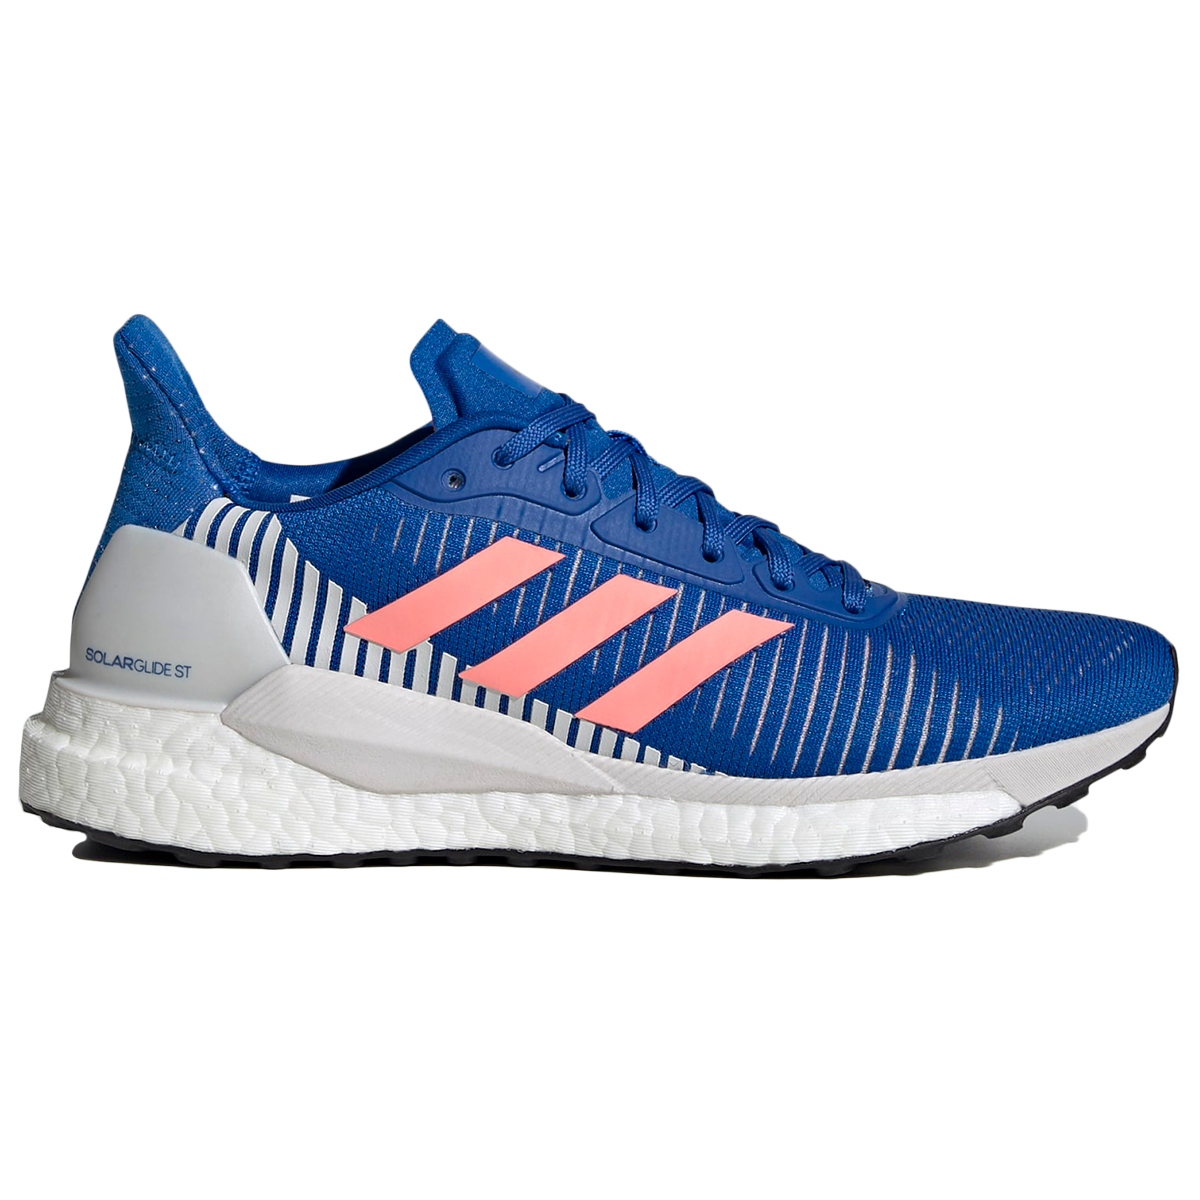 Adidas Women's Solarglide St 19 Running Shoe - Red, 7